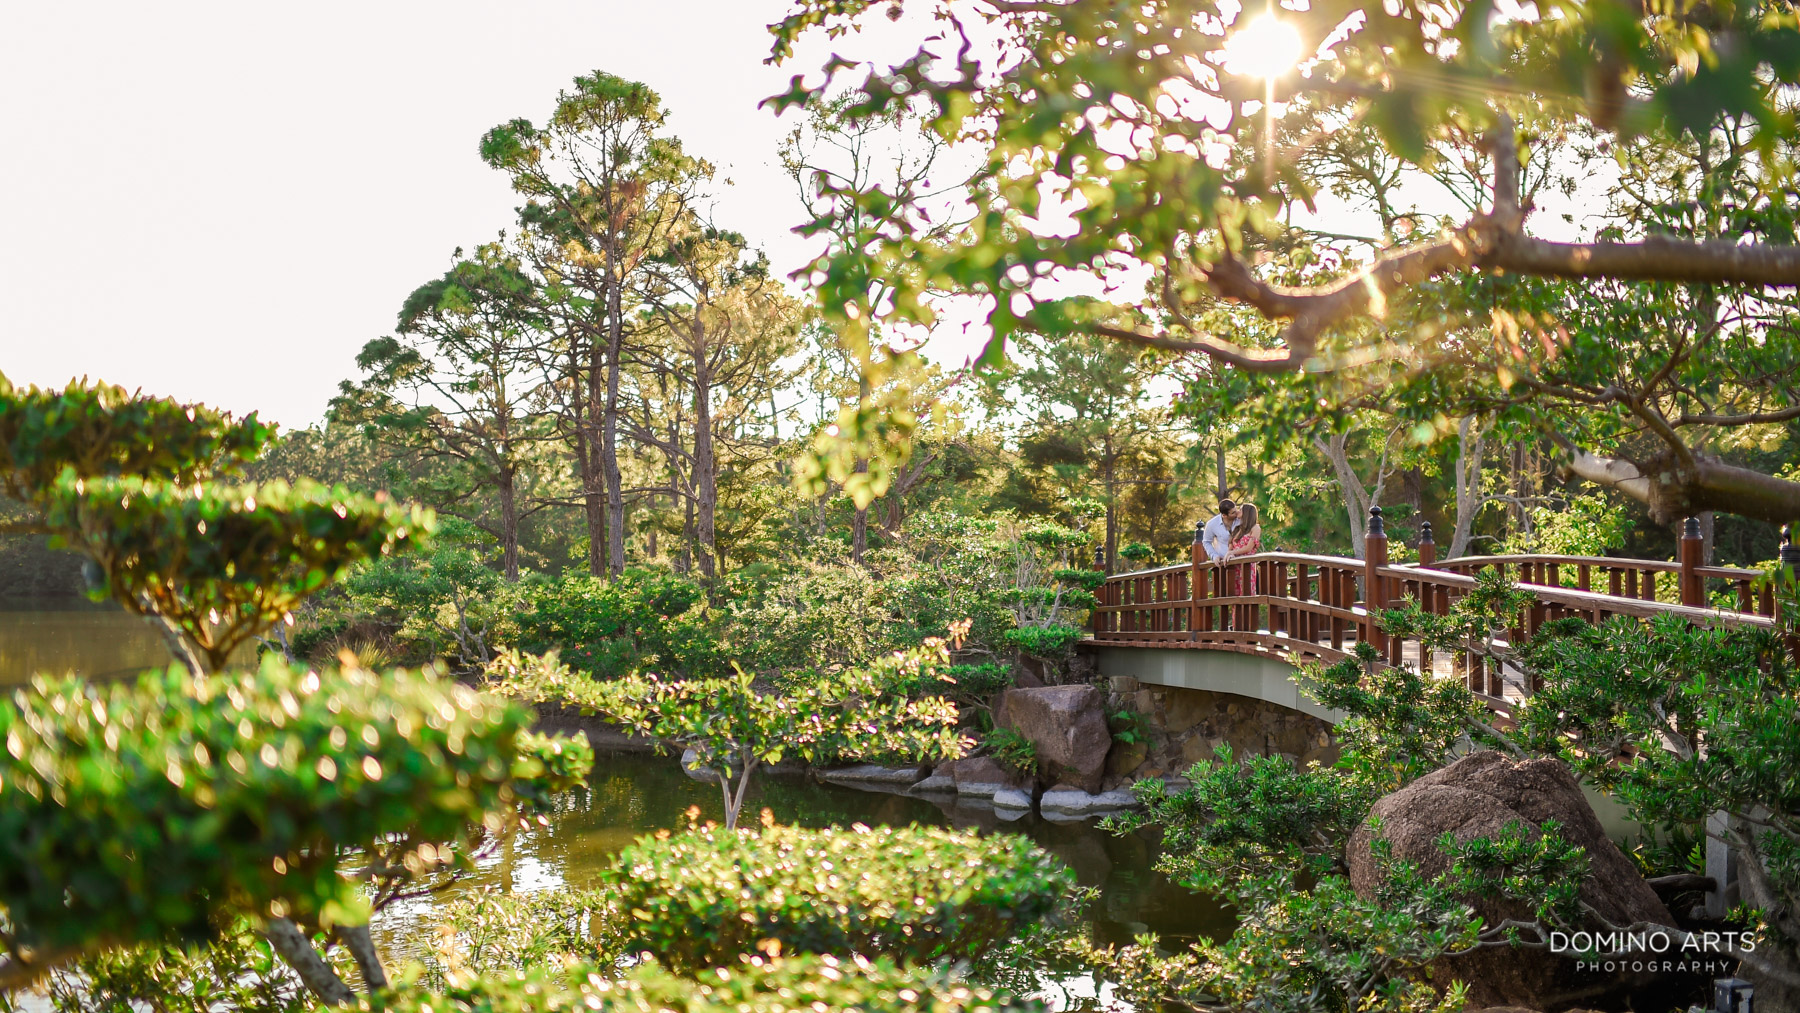 Classic romantic outdoor picture at Morikami engagement